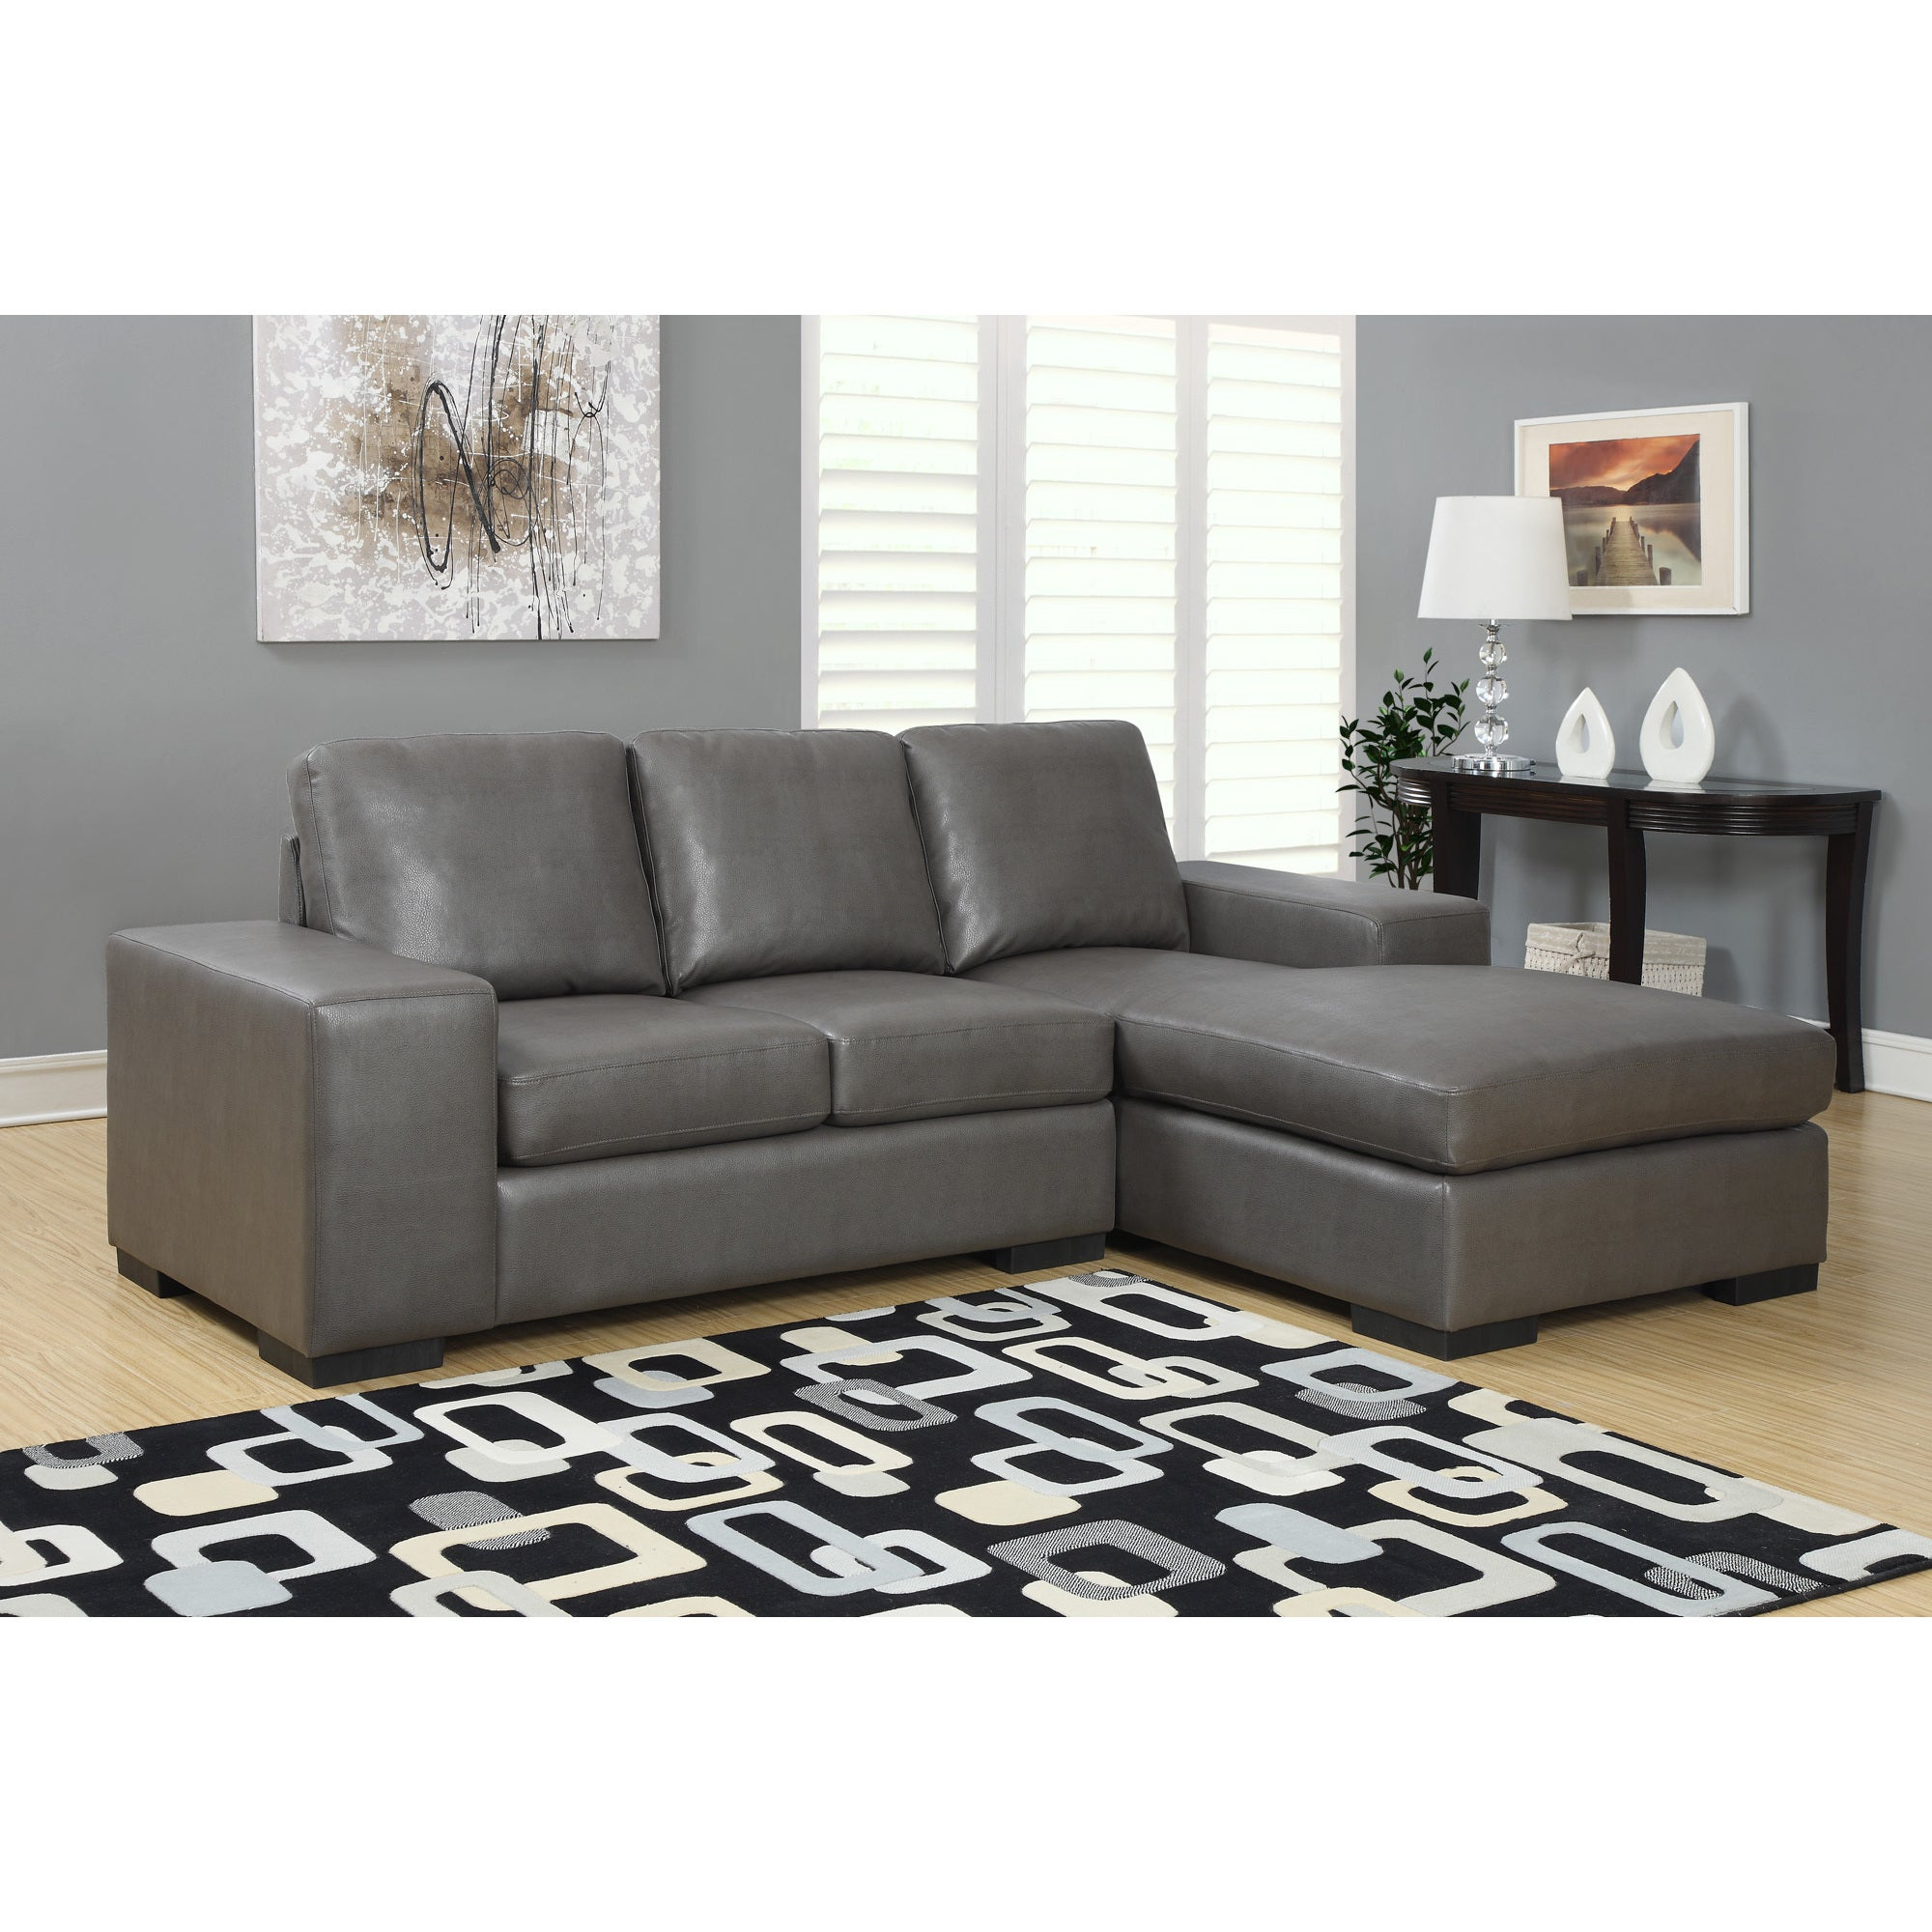 Charcoal Grey Bonded Leather